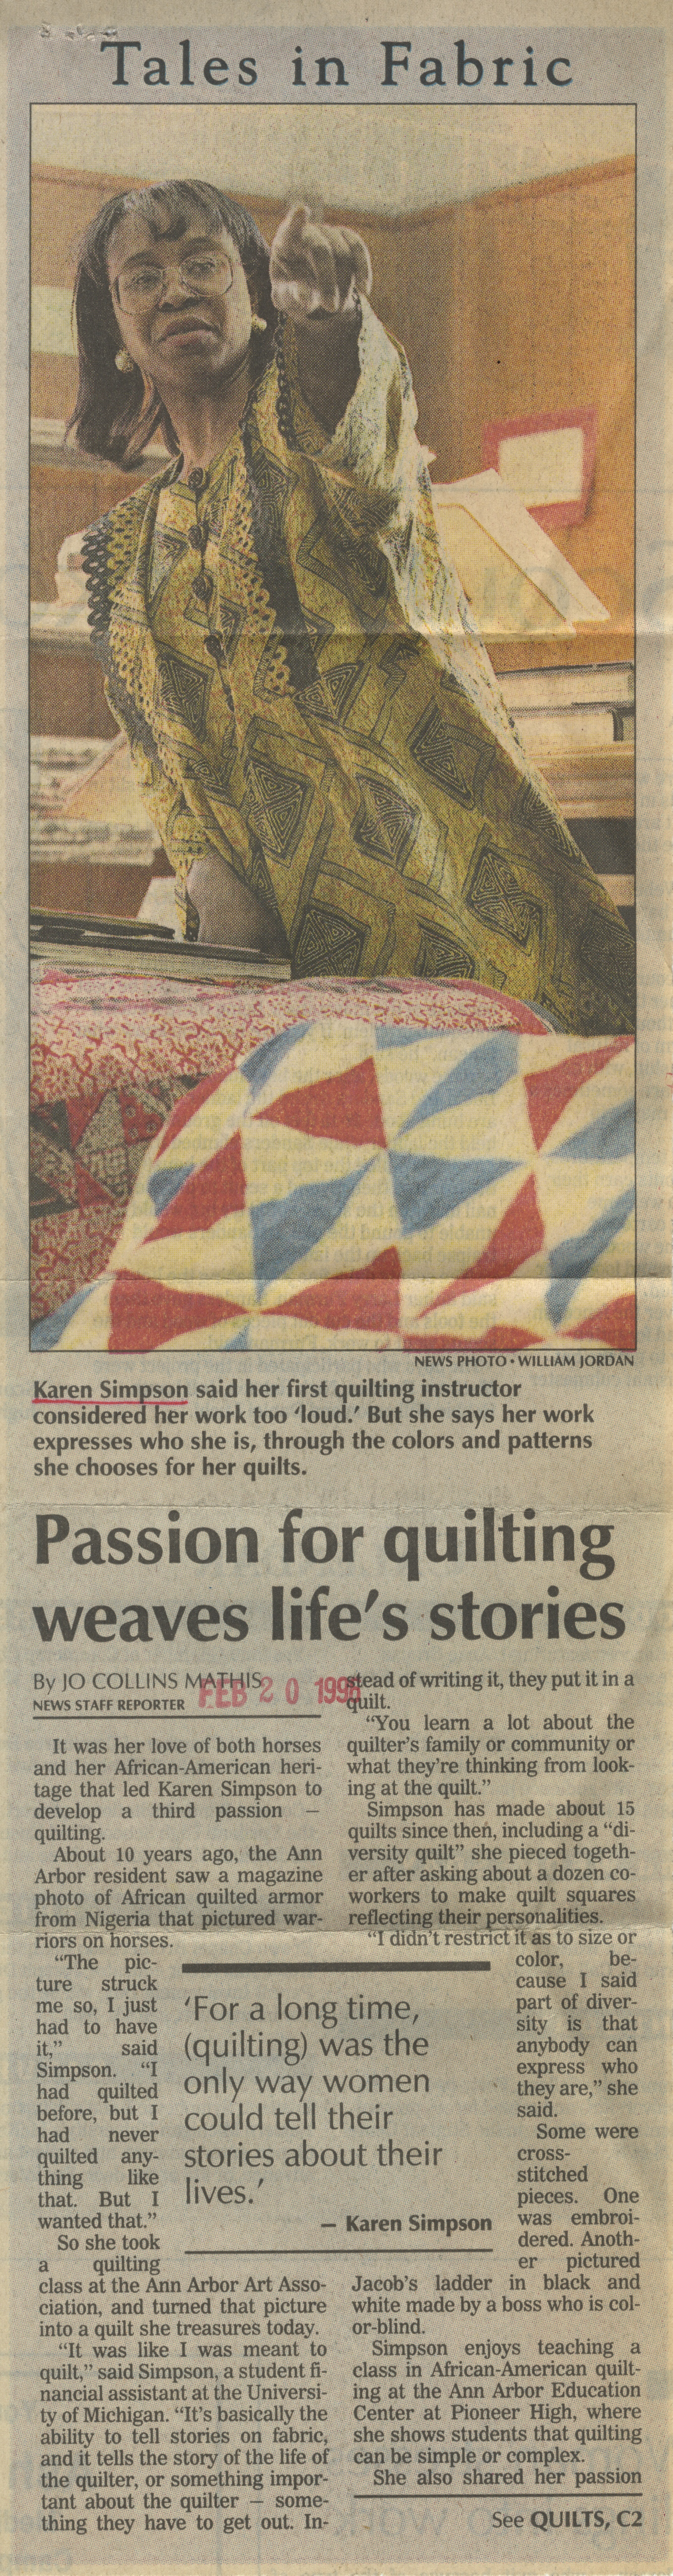 Passion For Quilting Weaves Life's Stories image